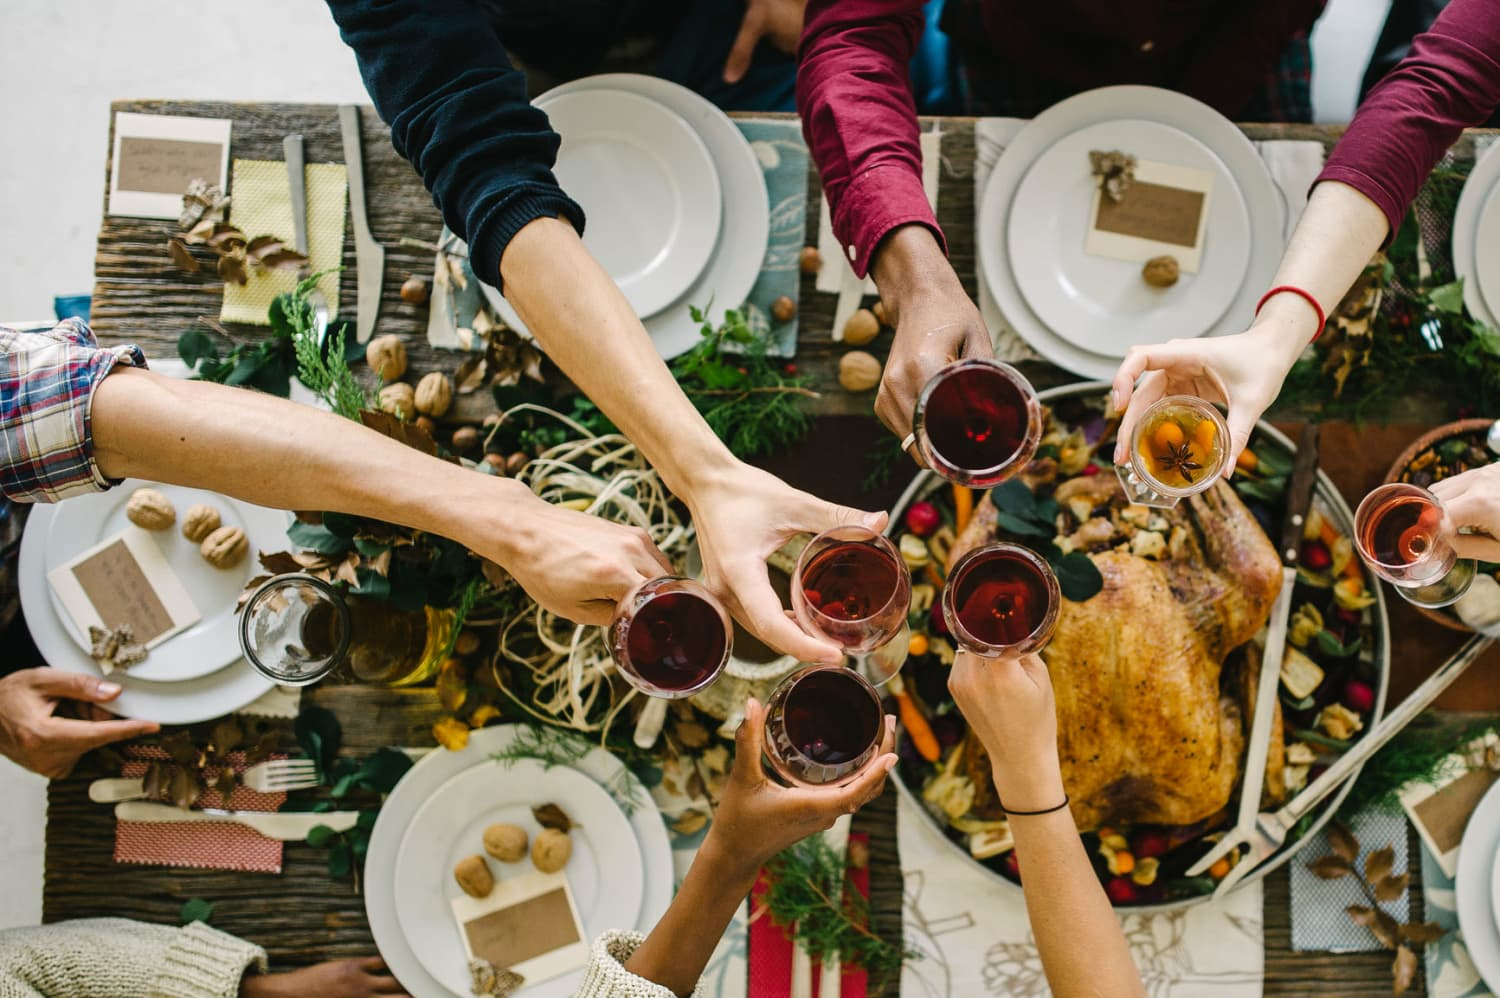 The Pottery Barn Holiday Entertaining Collection Is Here, and We're Ready to Celebrate